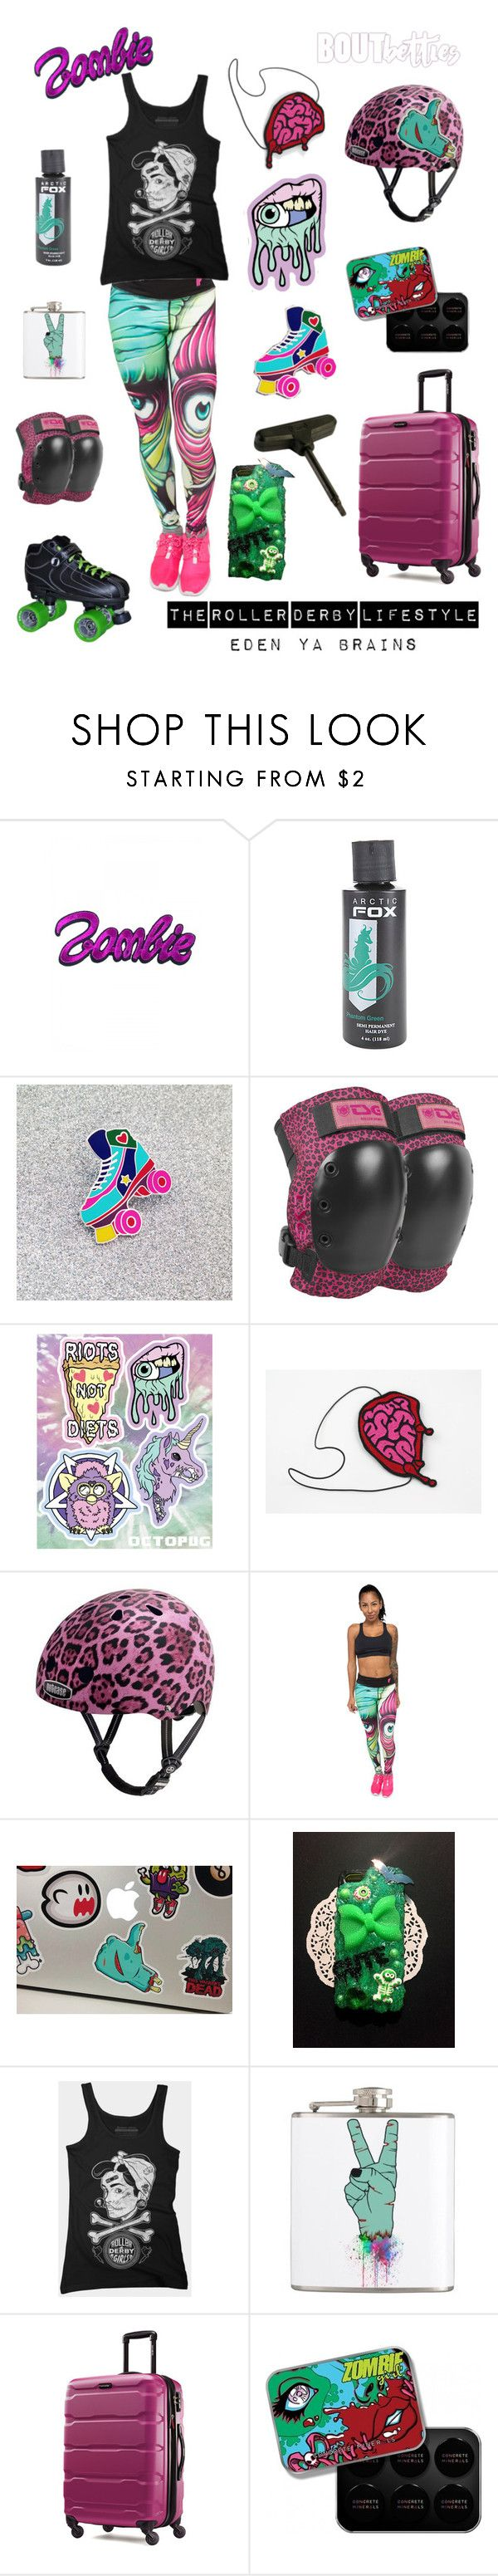 Roller derby | Fri-yay Fashion: Eden Ya Brains by Bout Betties on Polyvore featuring cutekawaii, Kreepsville 666, Samsonite and more